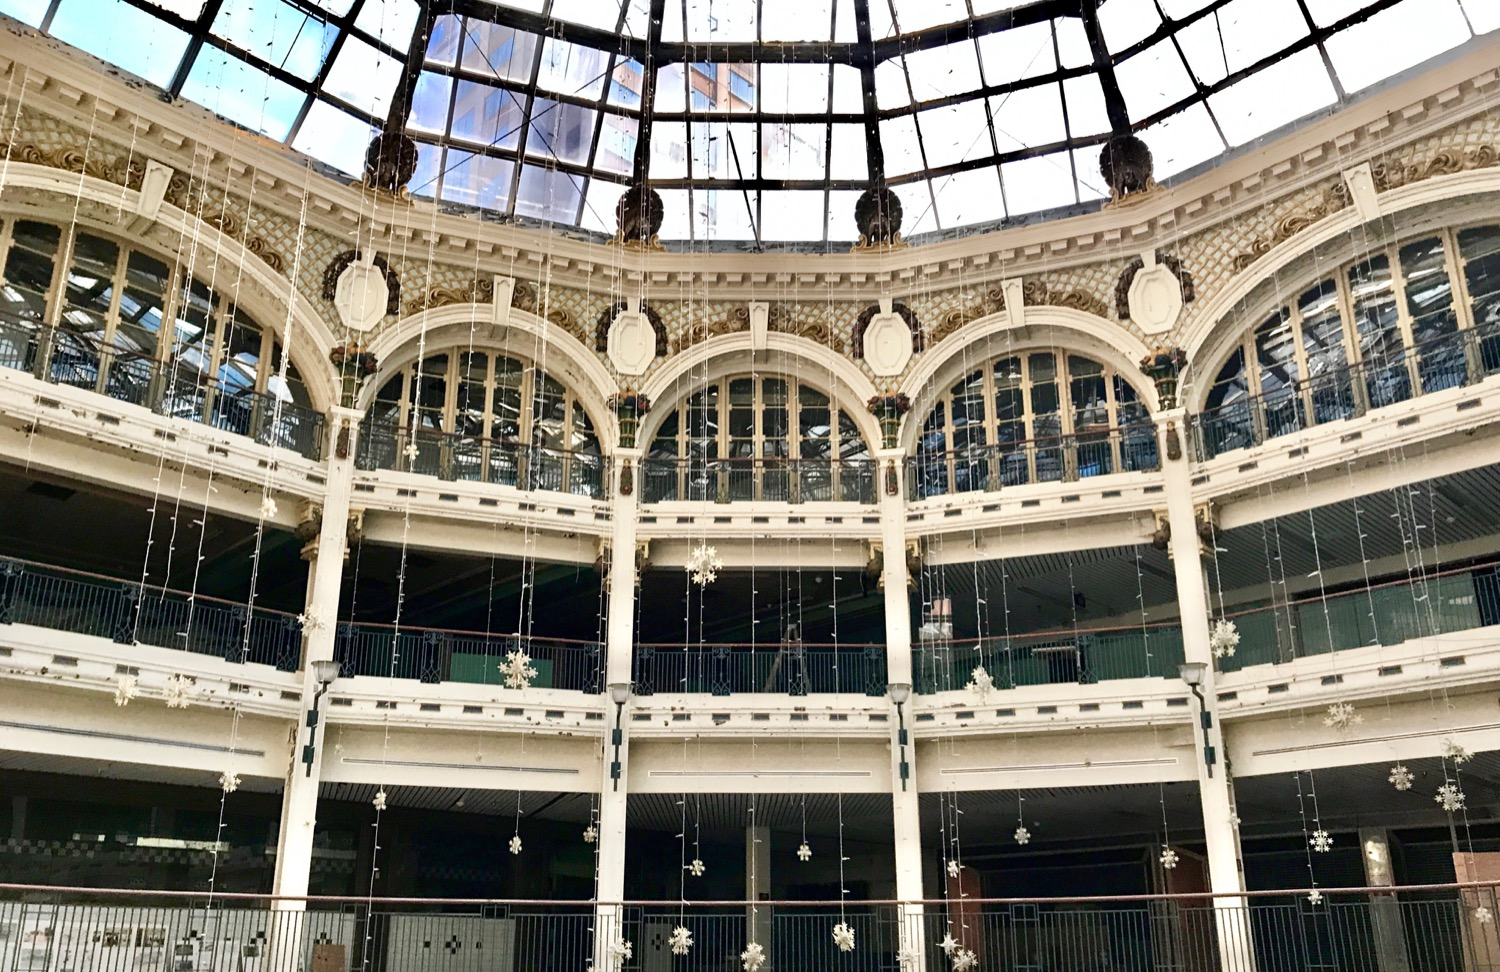 "Completed in 1904, many people describe the Dayton Arcade, a series of five interconnected buildings by a glass rotunda, as ""the most emotional building in Dayton."" It's empty now, but in its heyday, it was the site of a bustling urban mall. Now, private developers are restoring the buildings, with the intent to bring this beautiful structure back to life. Dayton Arcade is located about 55 miles north of Cincinnati. / Image: Brian Planalp // Published: 6.4.17"